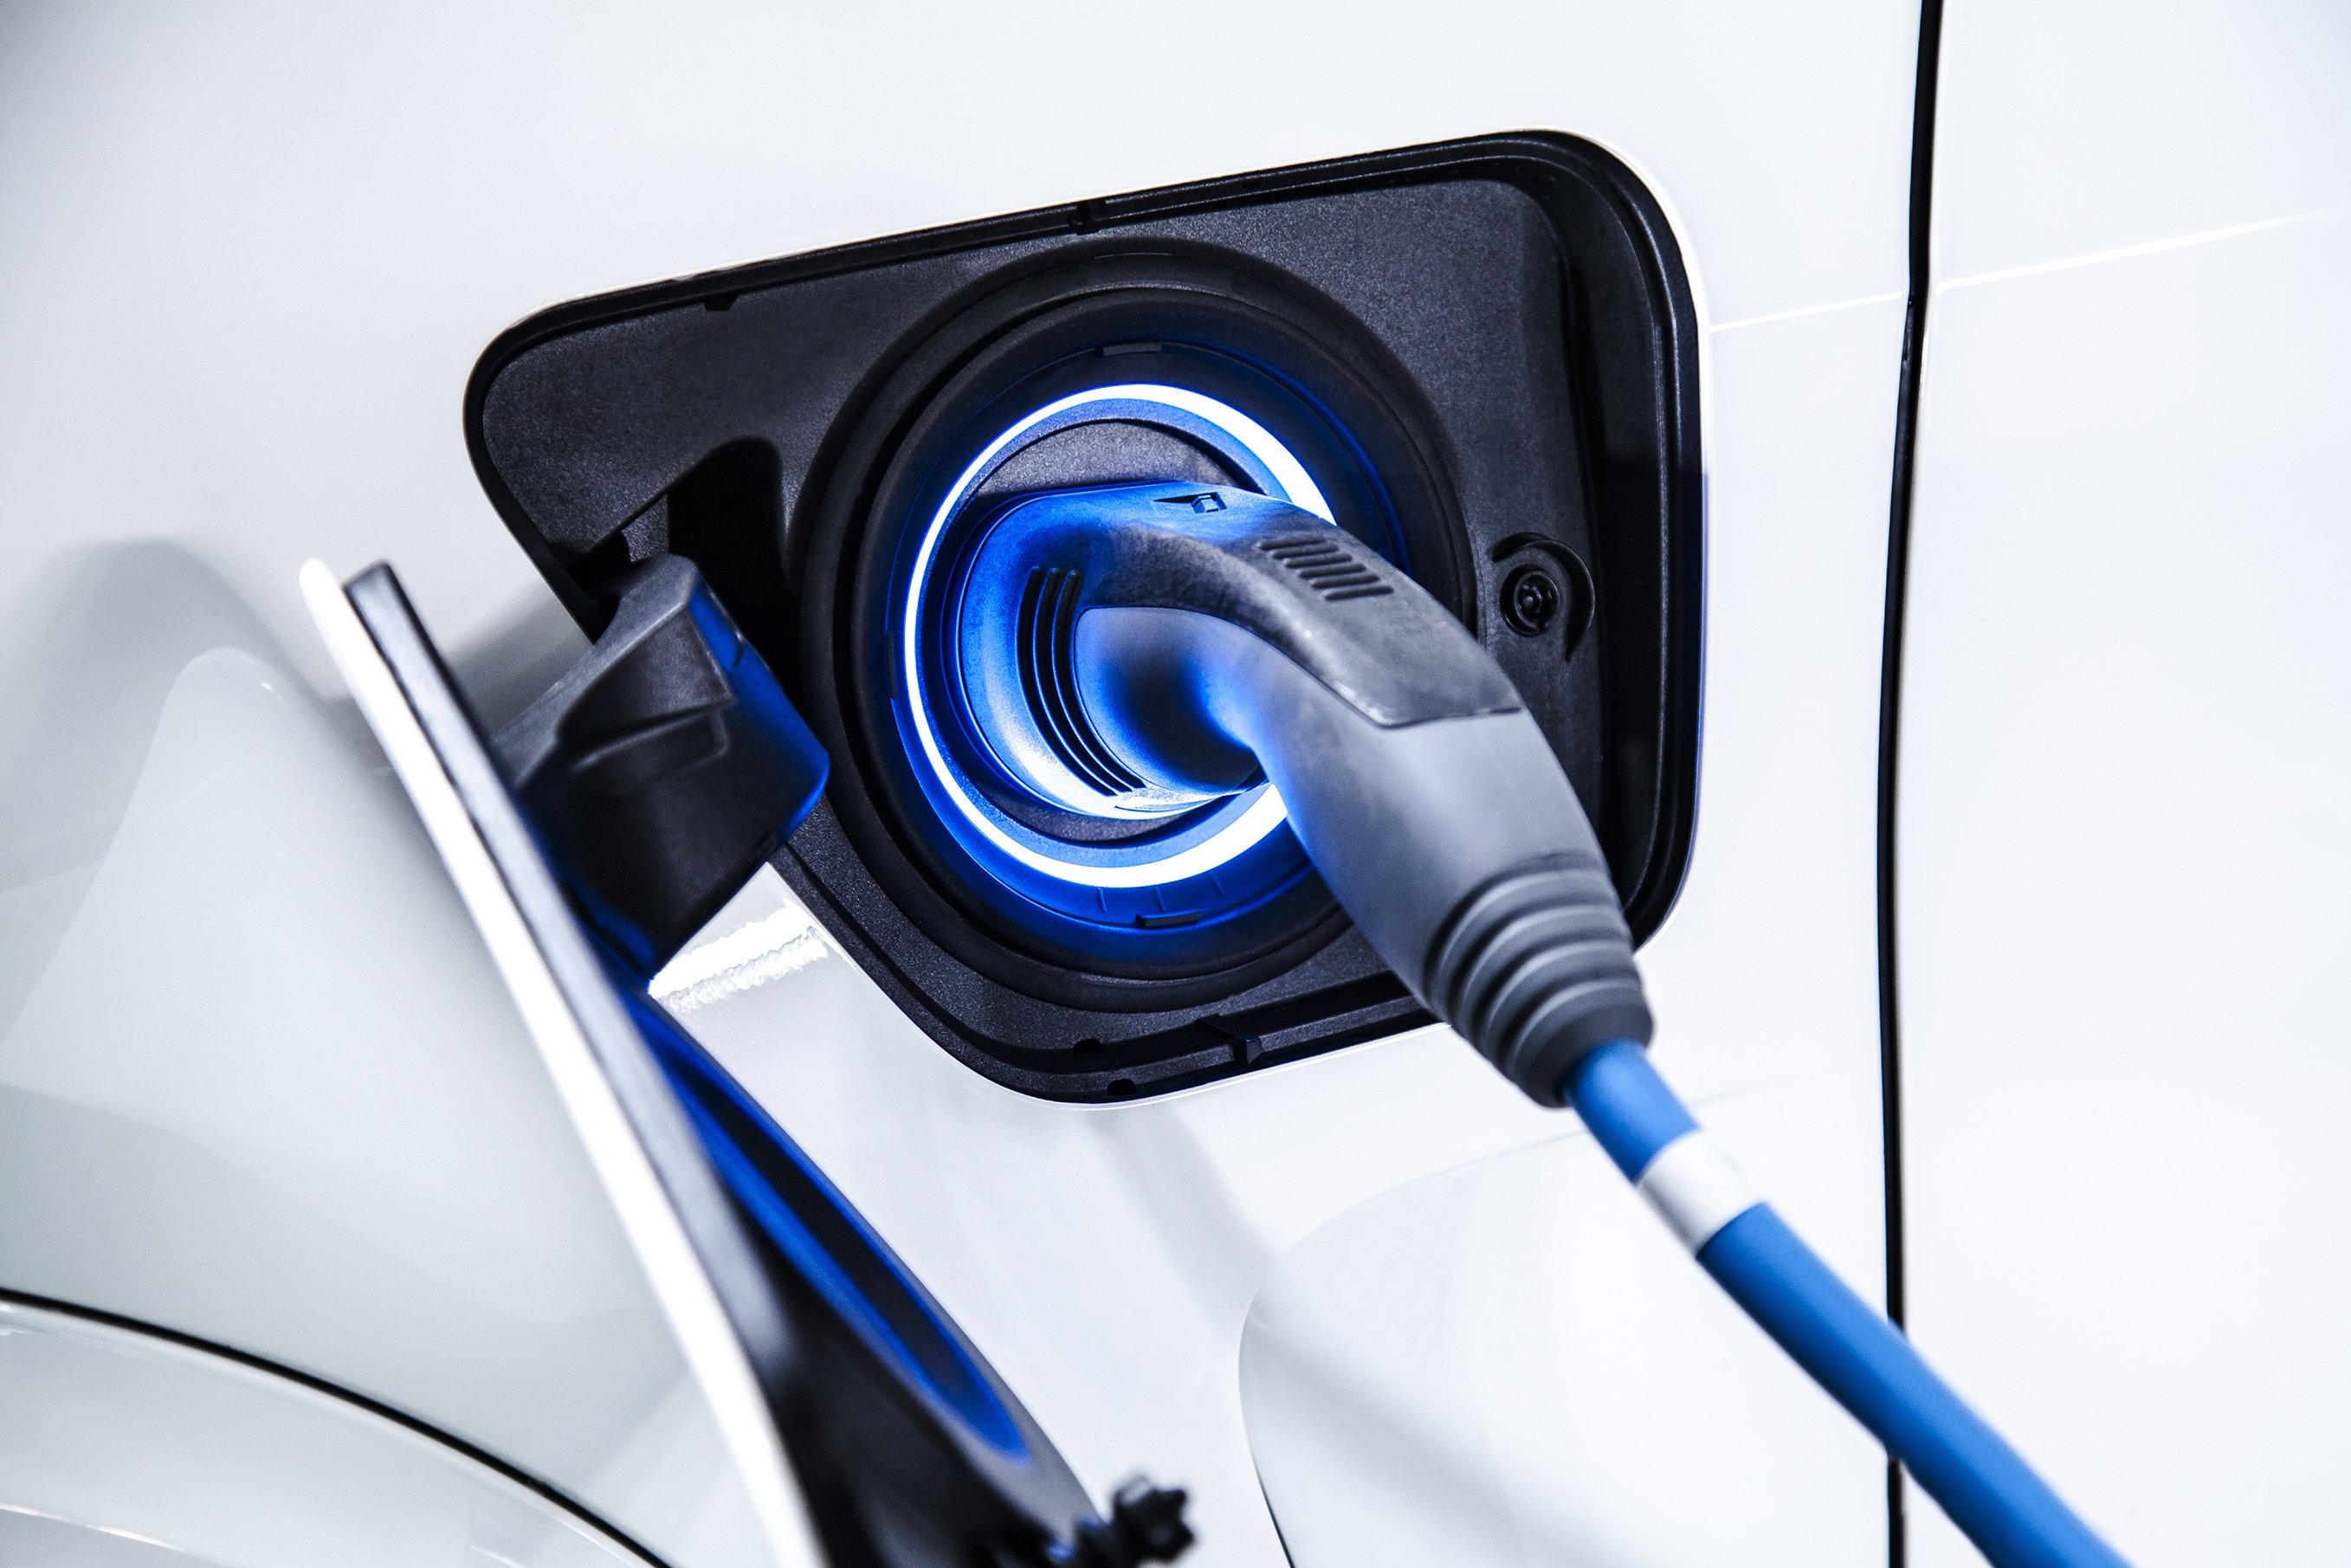 Inventor of the graphite anode – key Li-ion battery tech – says he can now charge an electric car in 10 minutes